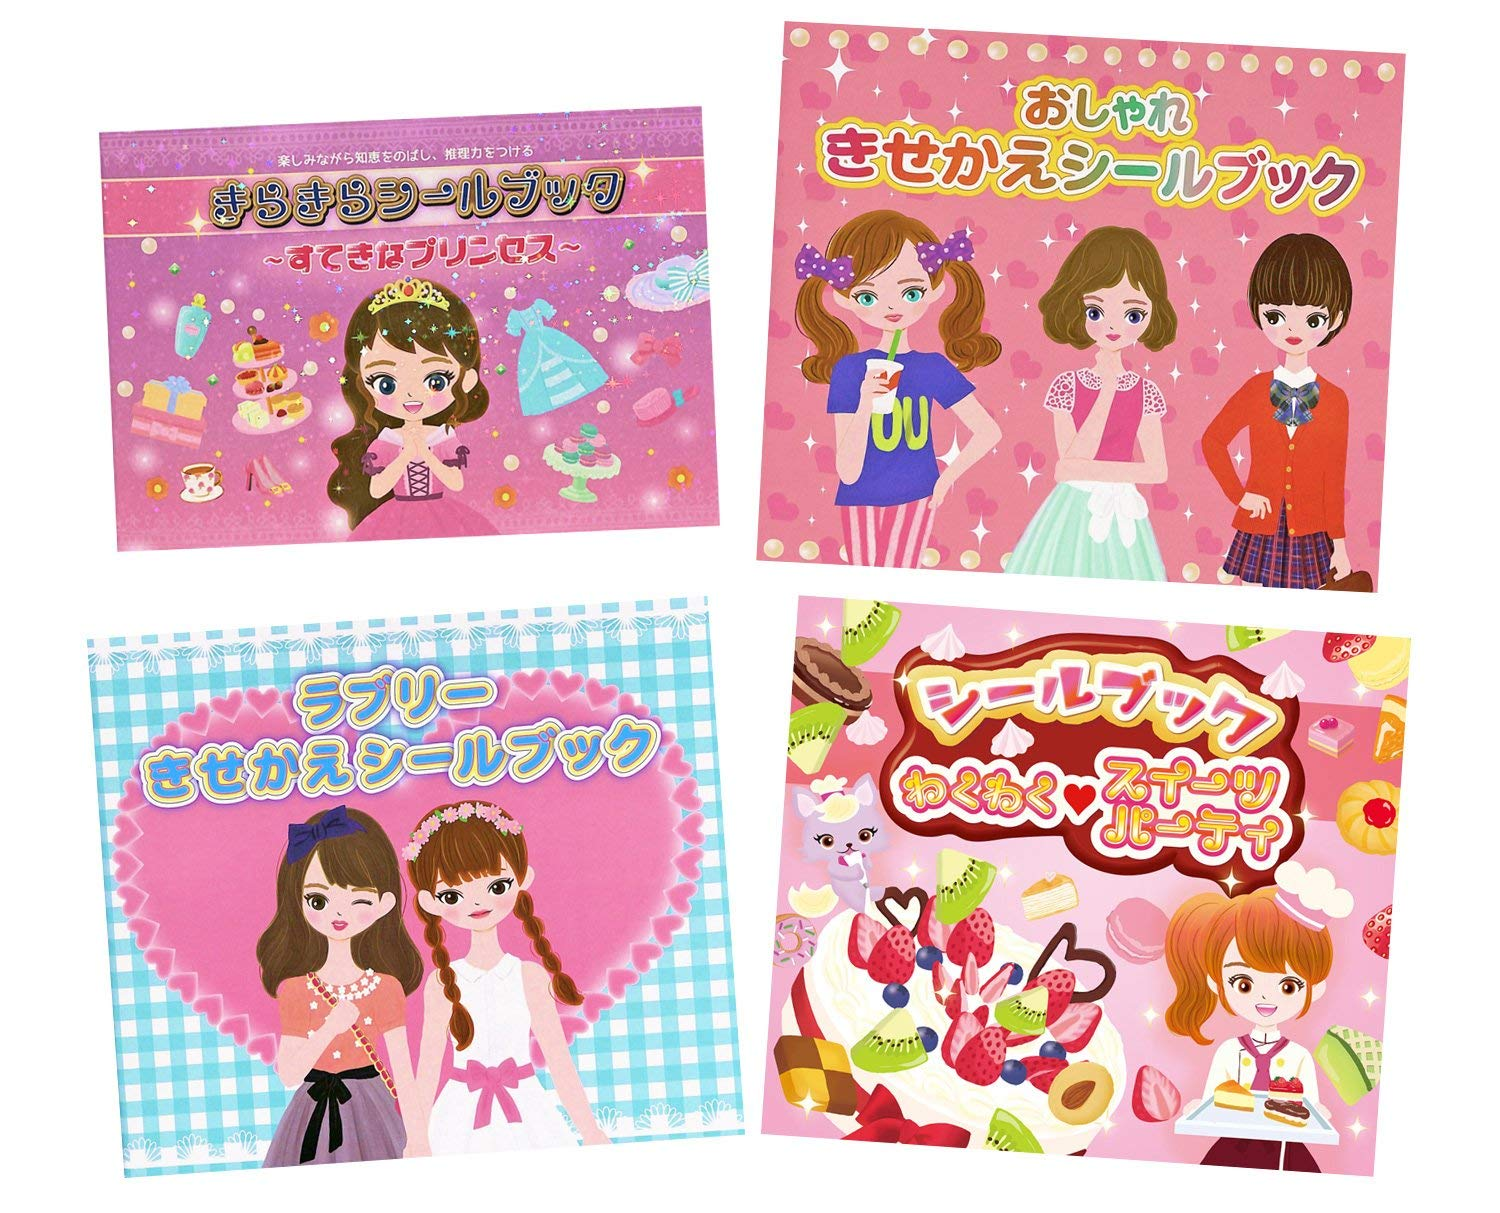 Liebam 4 Sticker Book Bundle: Kawaii Cute Girls' Sticker Book - Set Of Popular Dress-Up, Sweet Desert Party And Princess Sticker Books With 640+ Reusable Stickers!!!